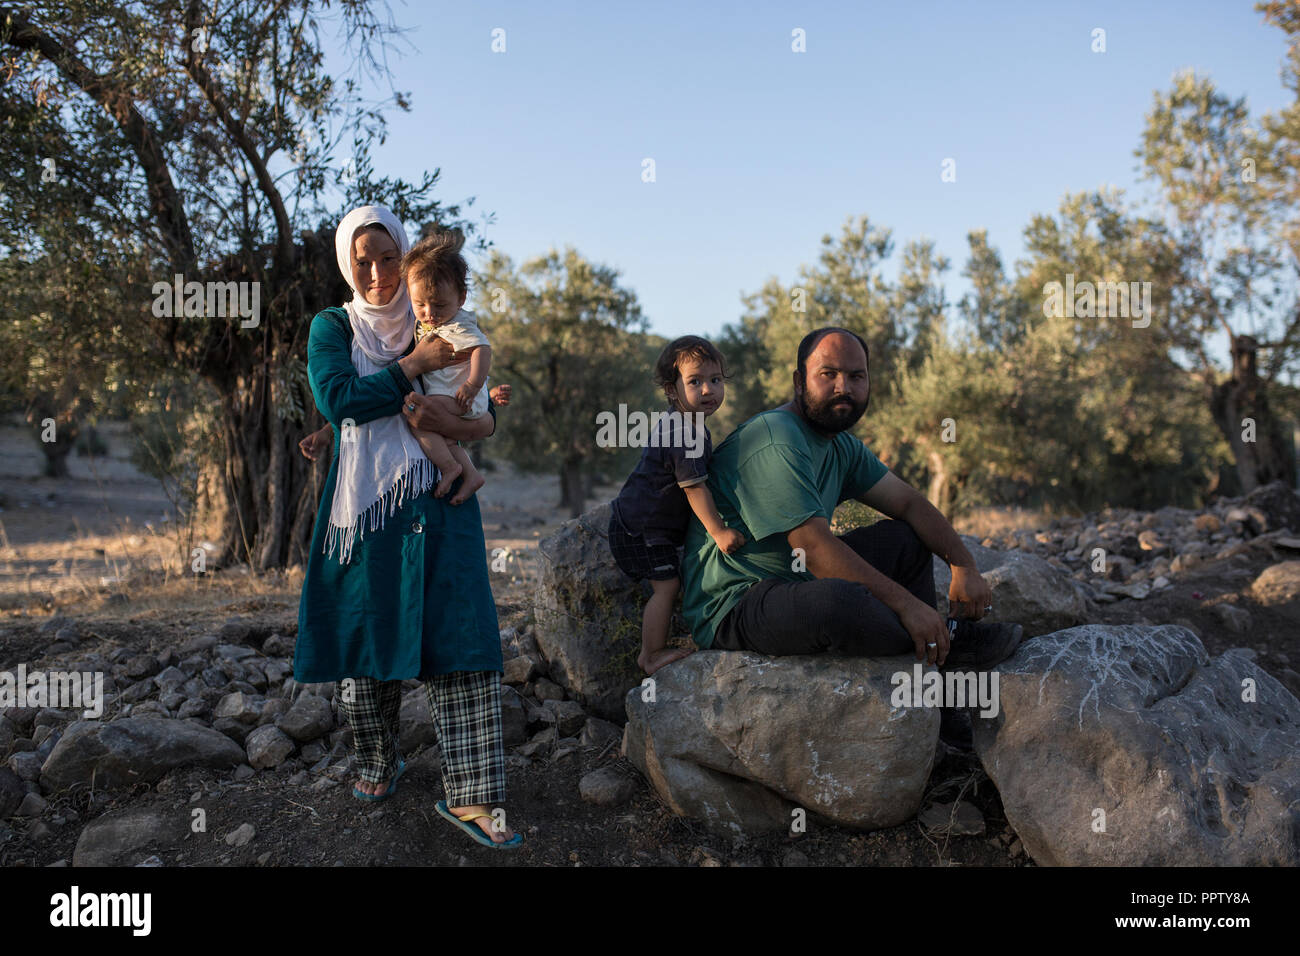 Moira, Greece. 24th Sep, 2018. A family is sitting in a temporary camp next to the refugee camp Moria. Credit: Socrates Baltagiannis/dpa/Alamy Live News - Stock Image